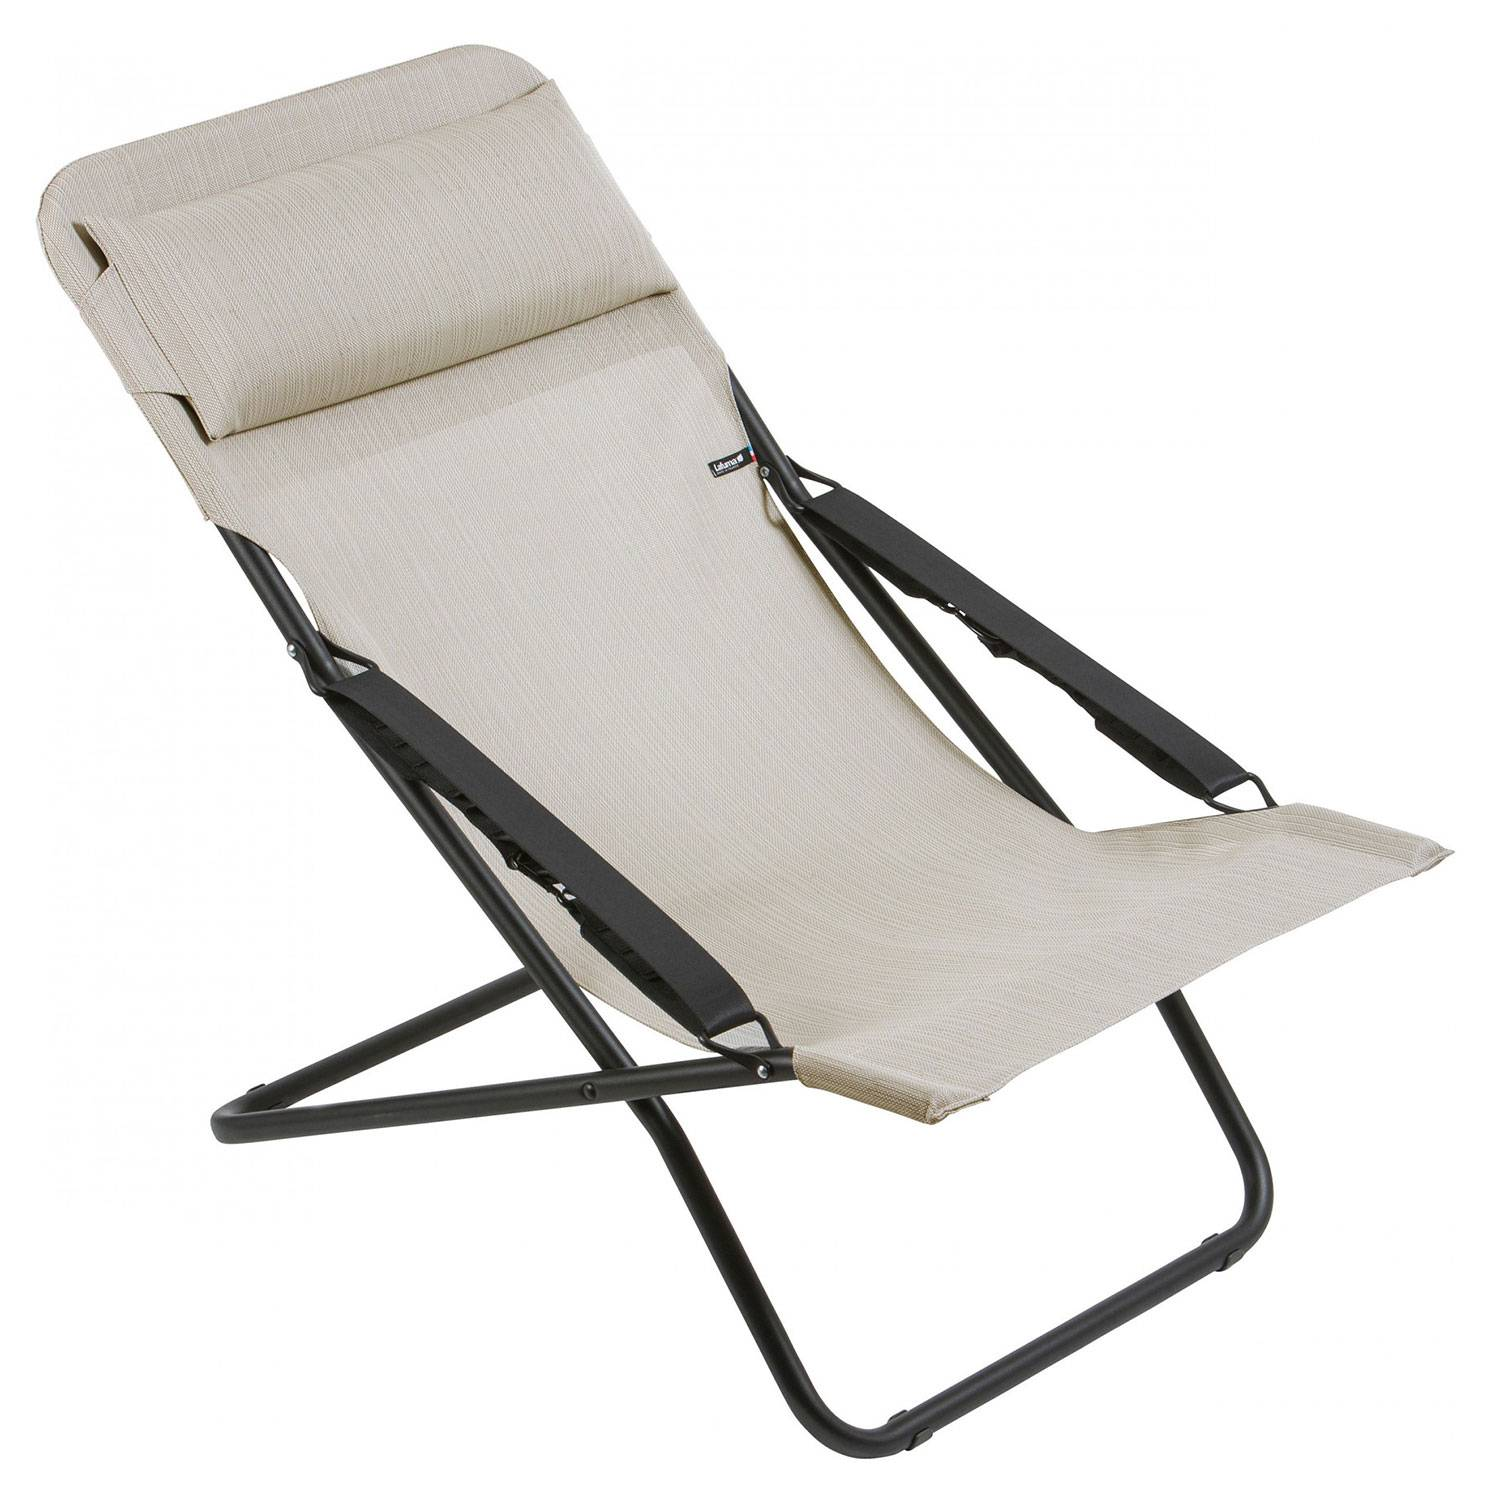 Lafuma Transabed Sunlounger, Duo Galet